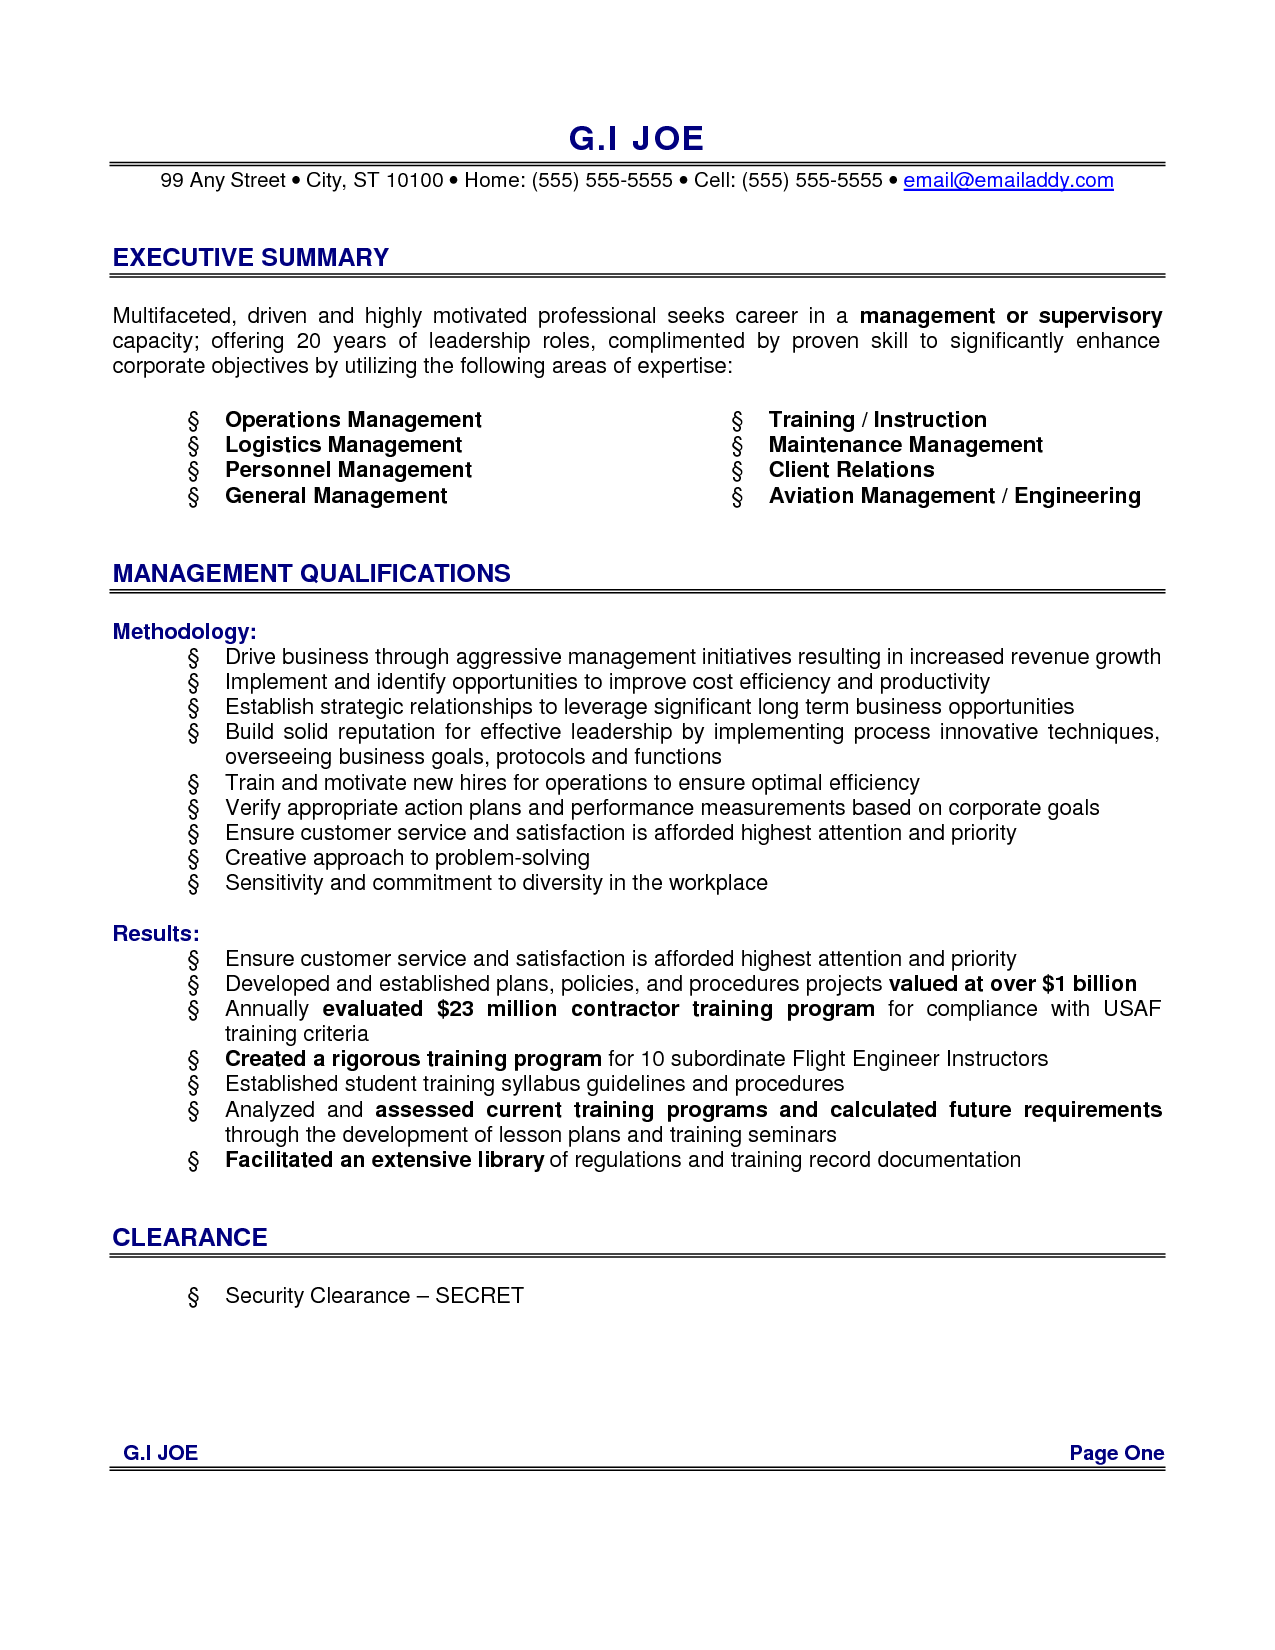 Sample Resume Summary Statements Resumeexamples For Executive Summary With Management